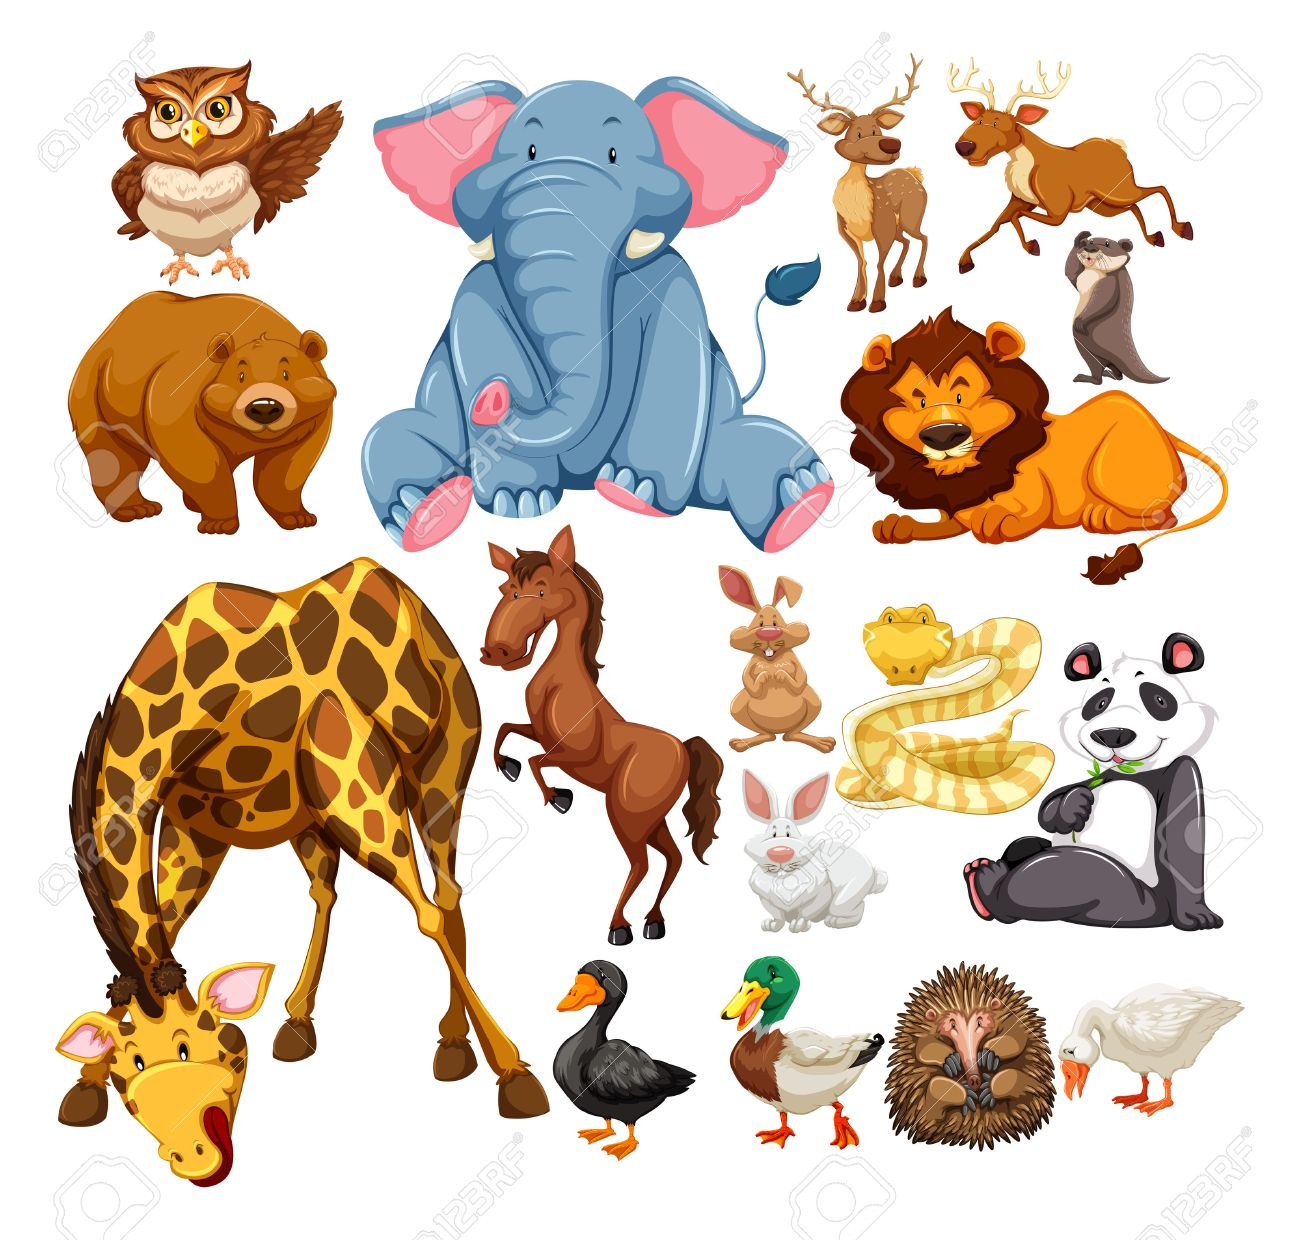 Wild Animals On White Illustration Royalty Free Cliparts, Vectors ...